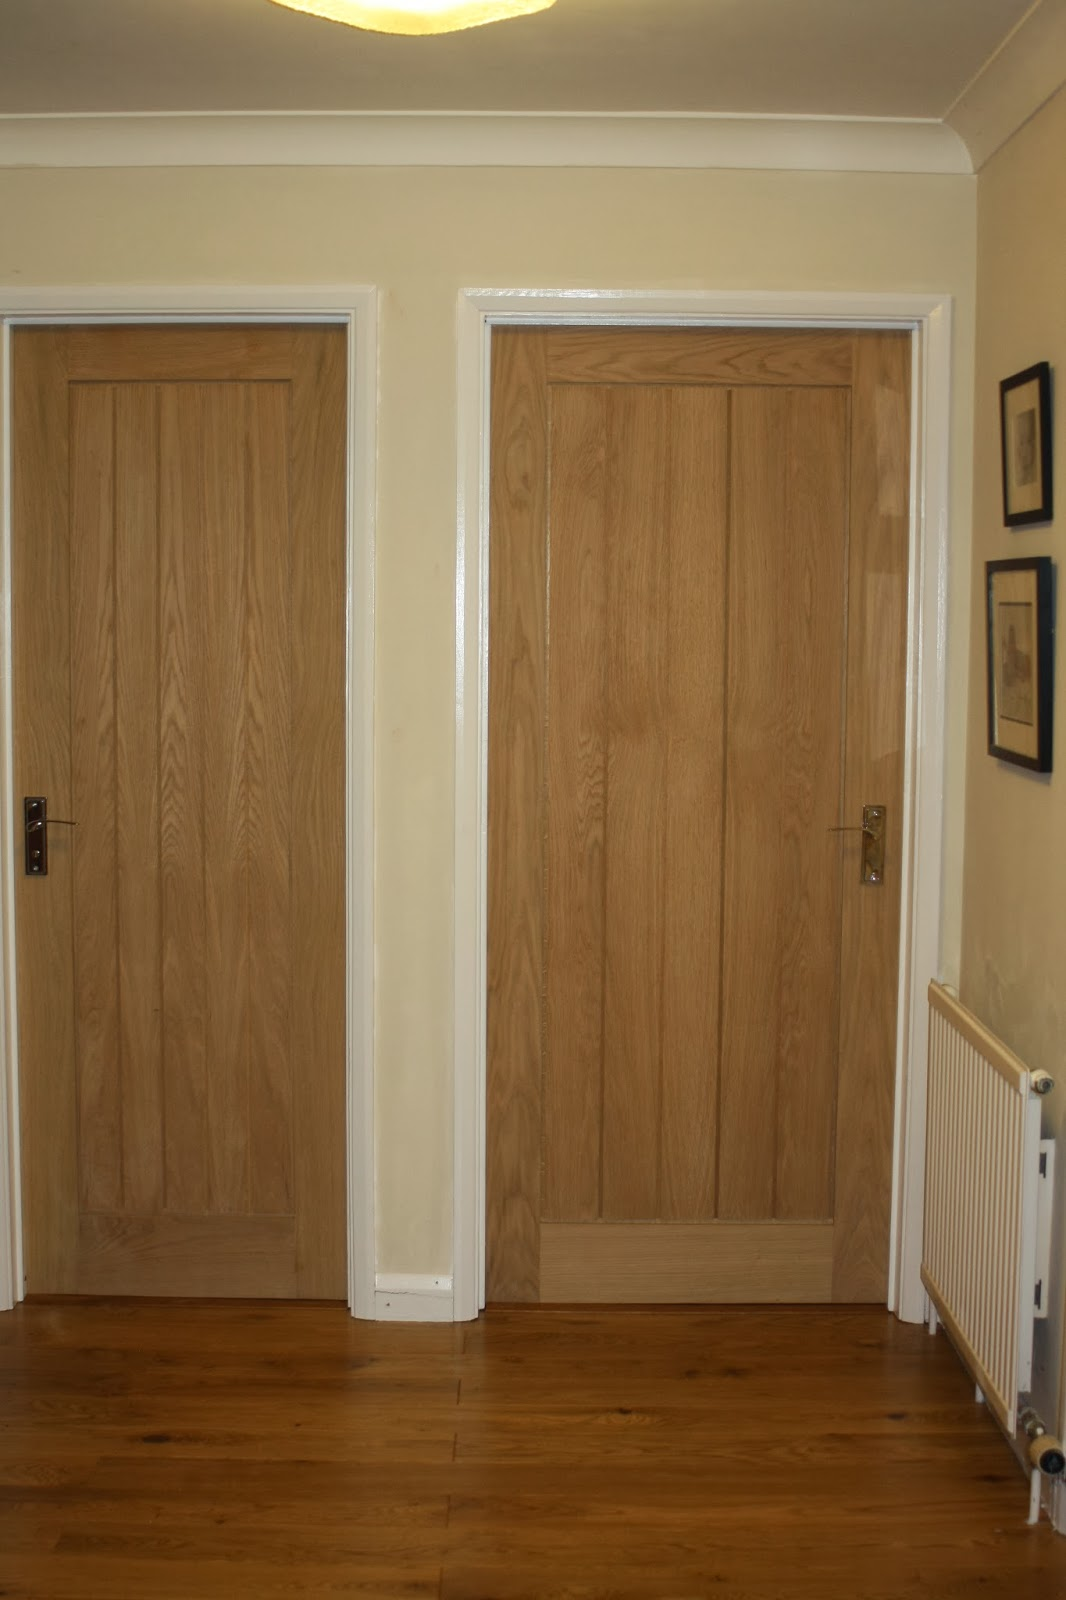 Doors-hallway-new-house-365